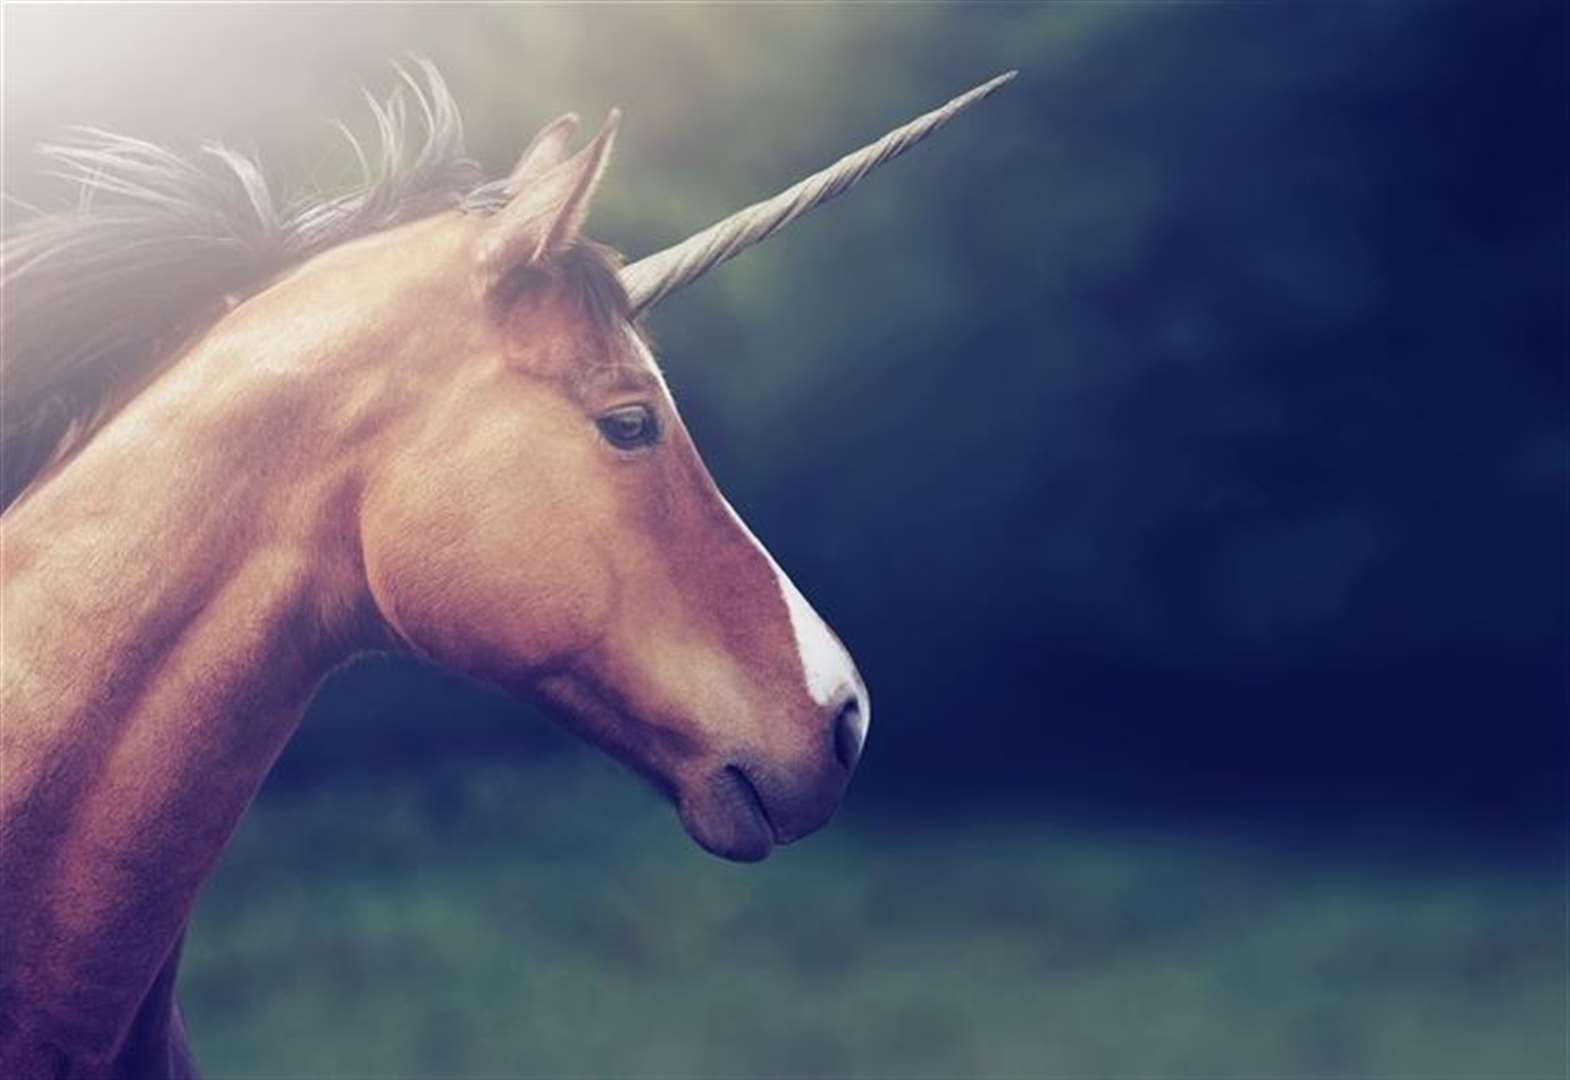 Firm offering chance to meet unicorns cancels all events